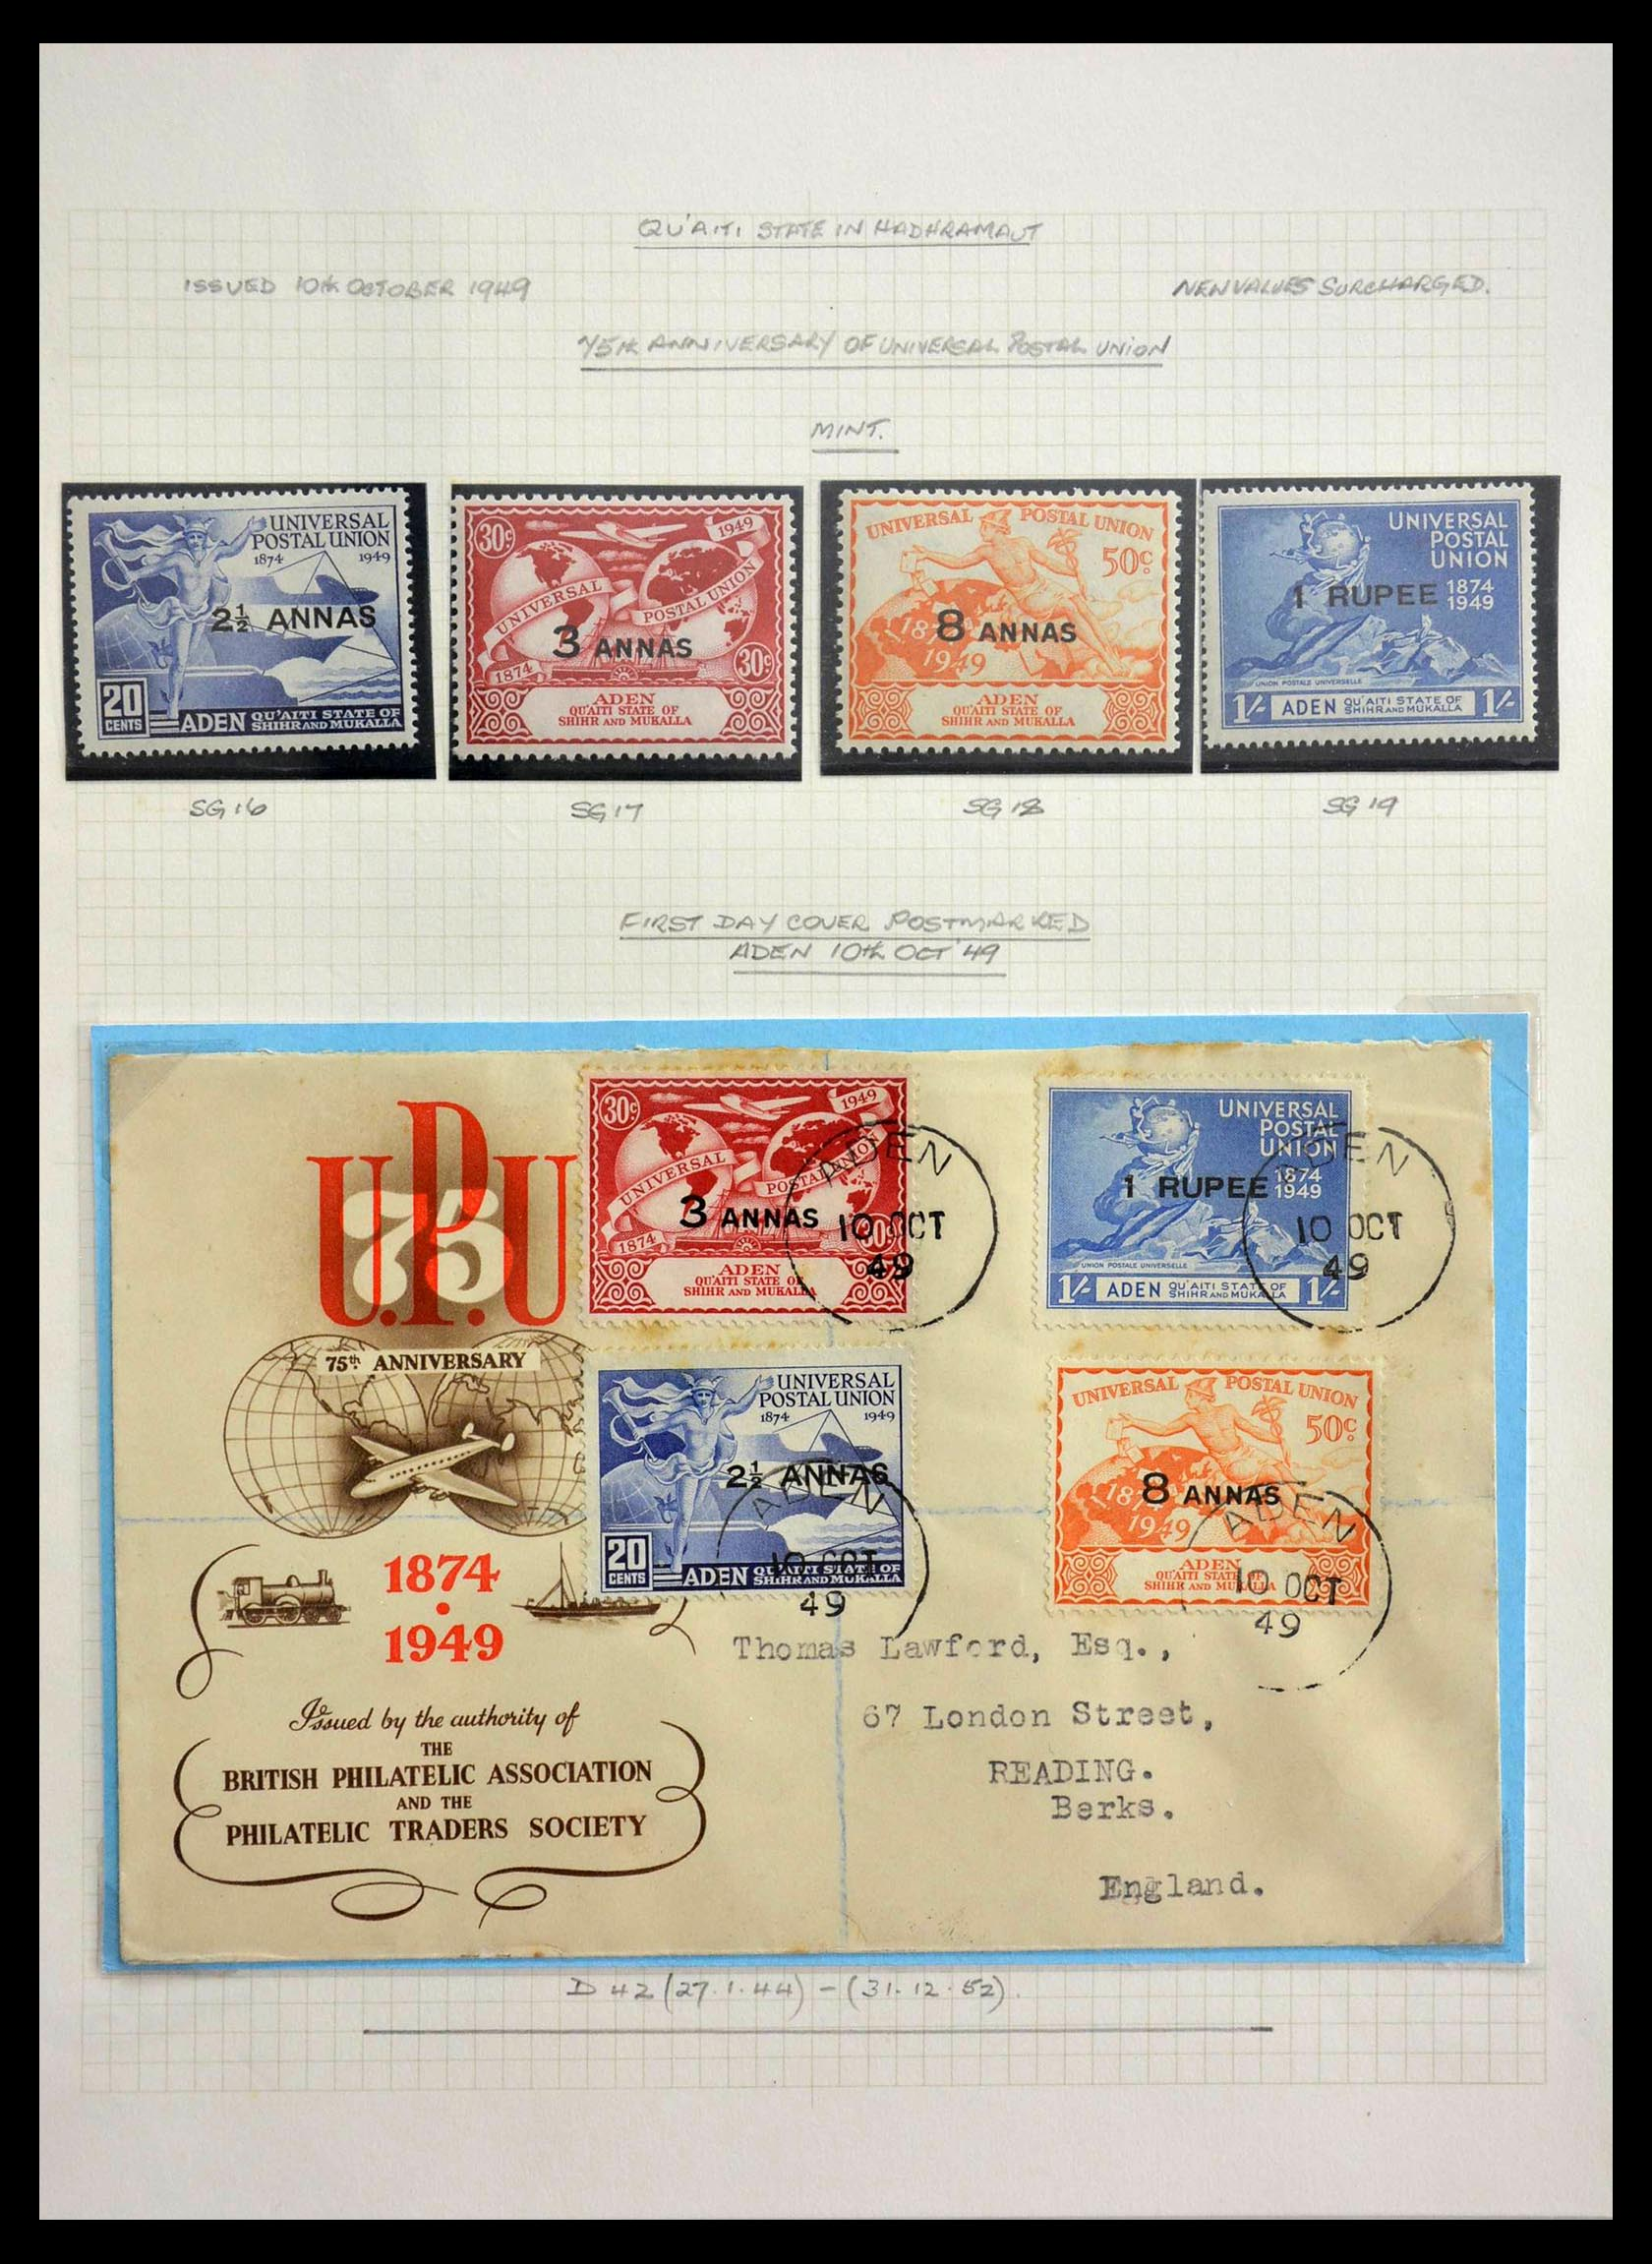 28672 014 - Stamp collection 28672 Aden Qu'aiti State 1942-1966.